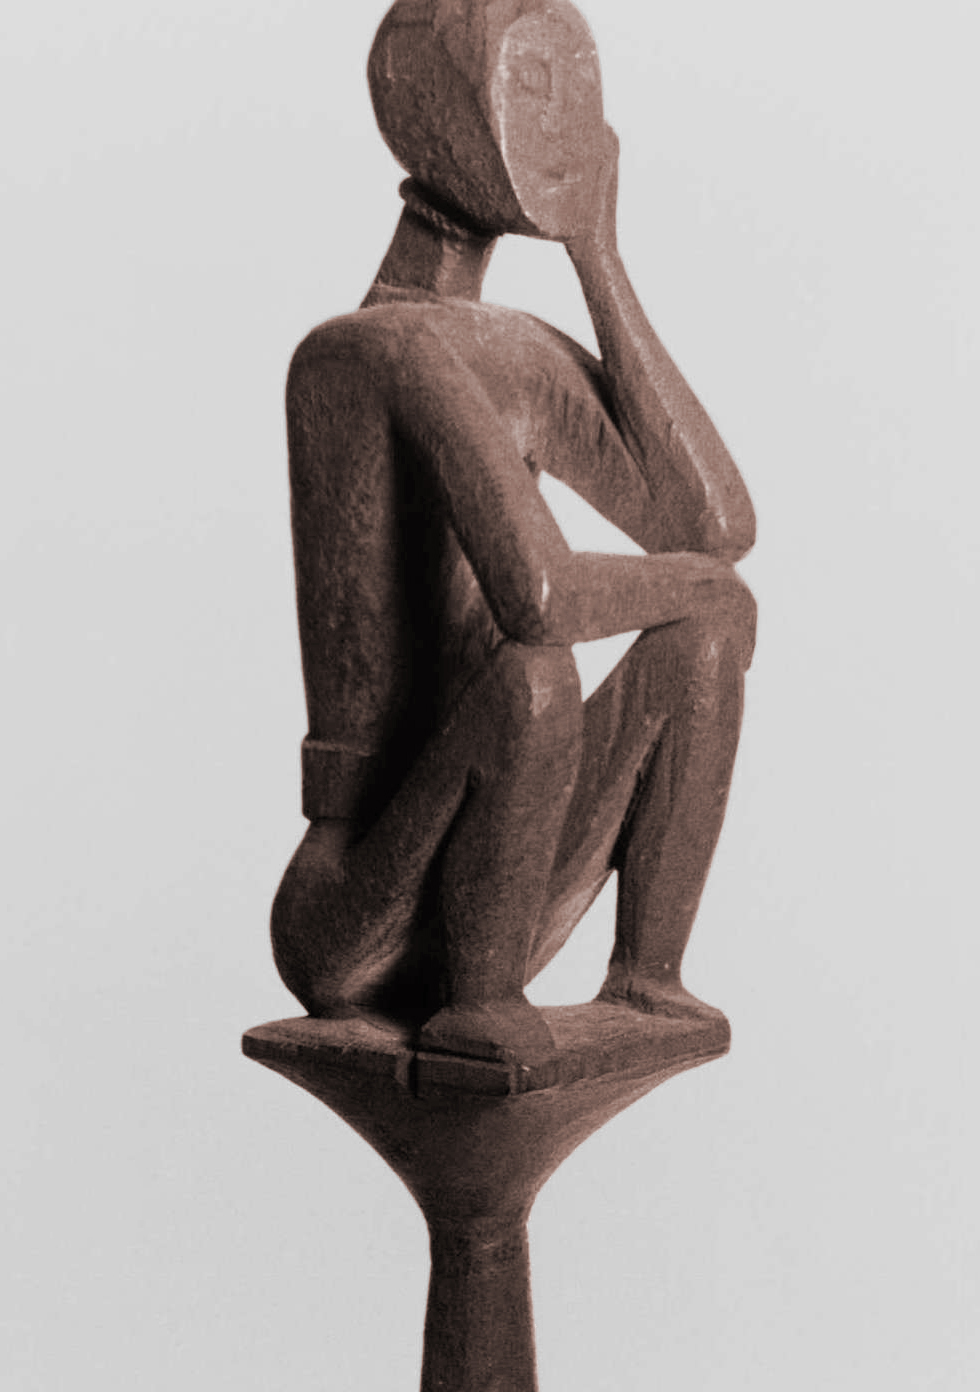 Kayan Storage Hook Finial | Borneo © University of Pennsylvania Museum of Archaeology and Anthropology